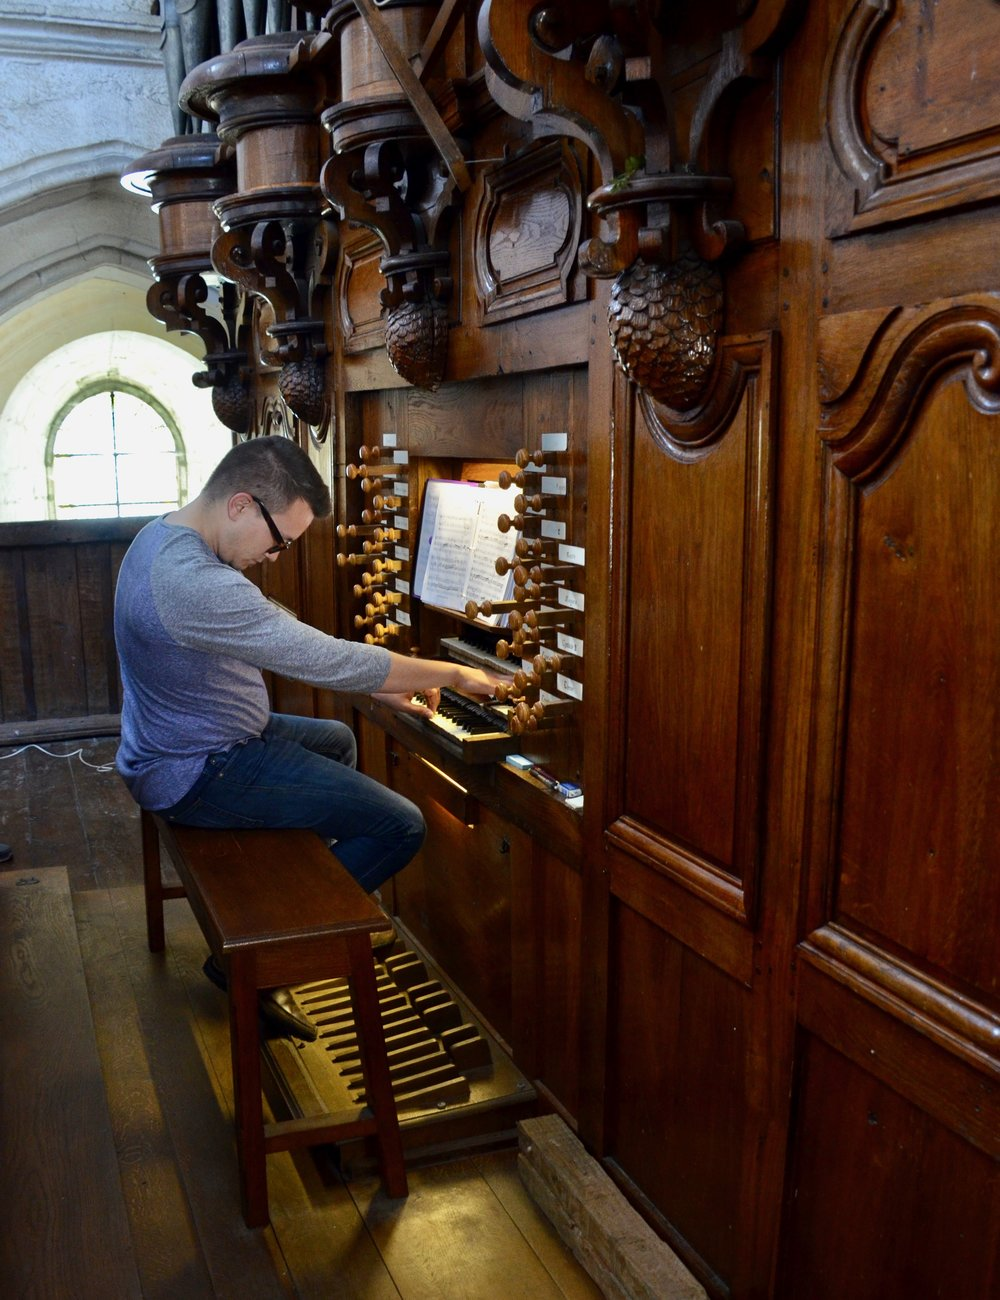 Corey de Tar plays the organ at Rozay-en-Brie!